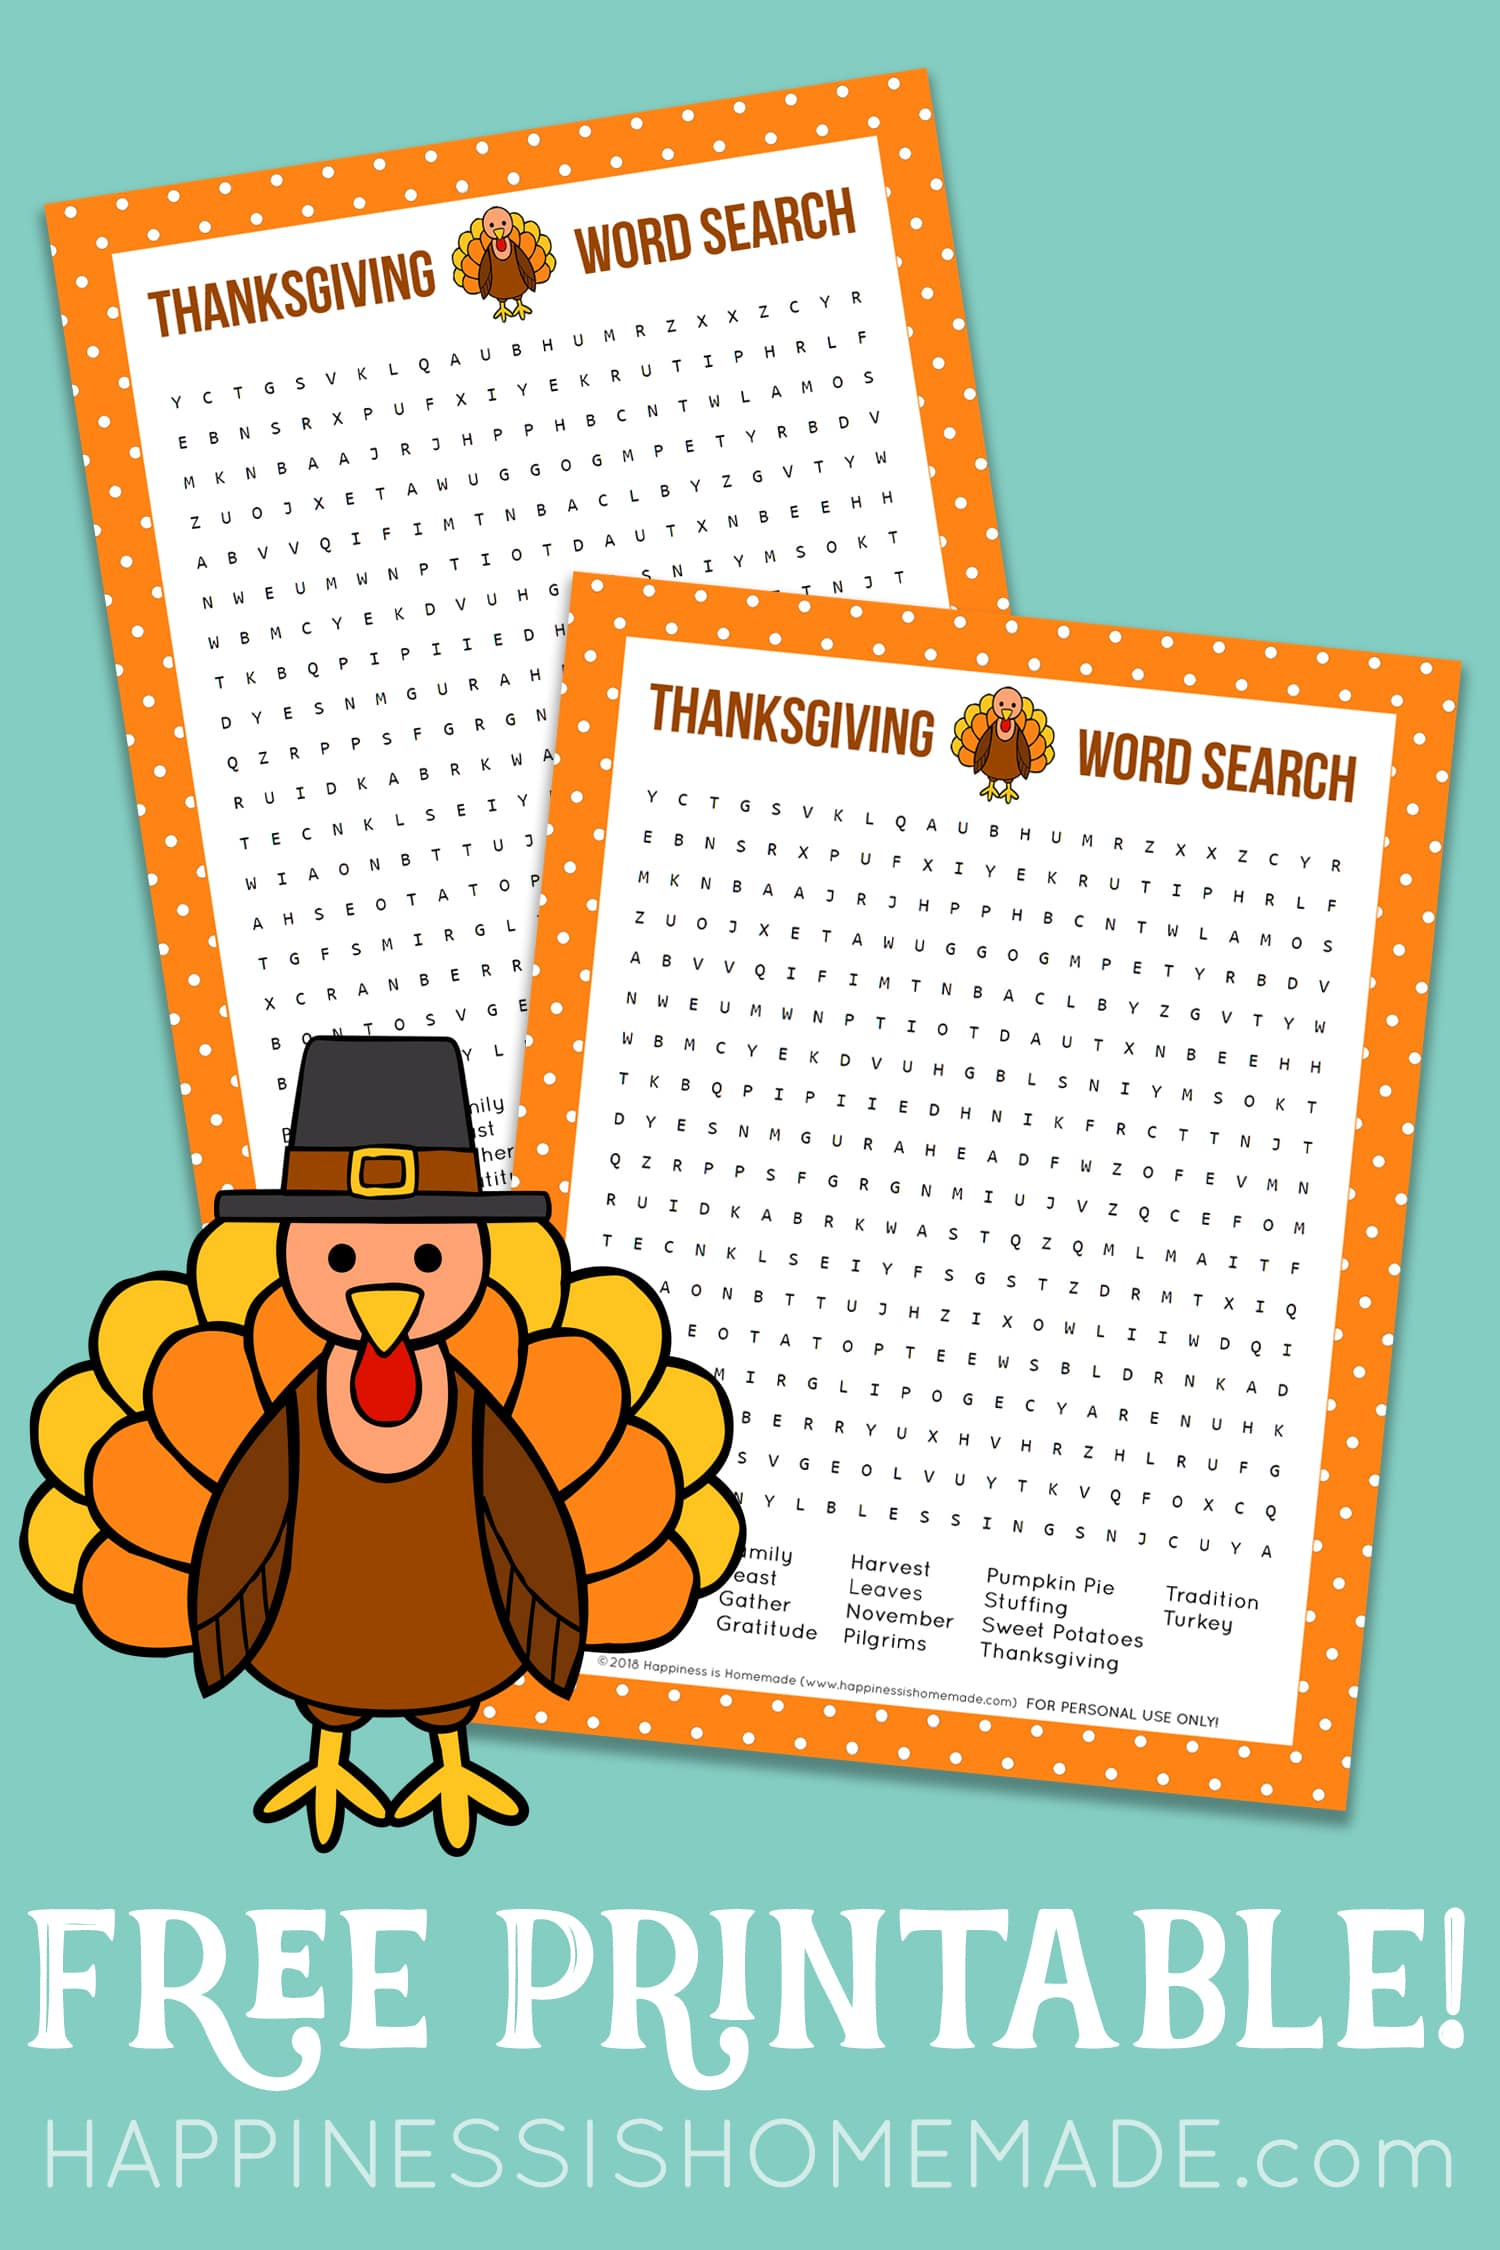 2 Thanksgiving Word Search Puzzles on teal background with turkey graphic